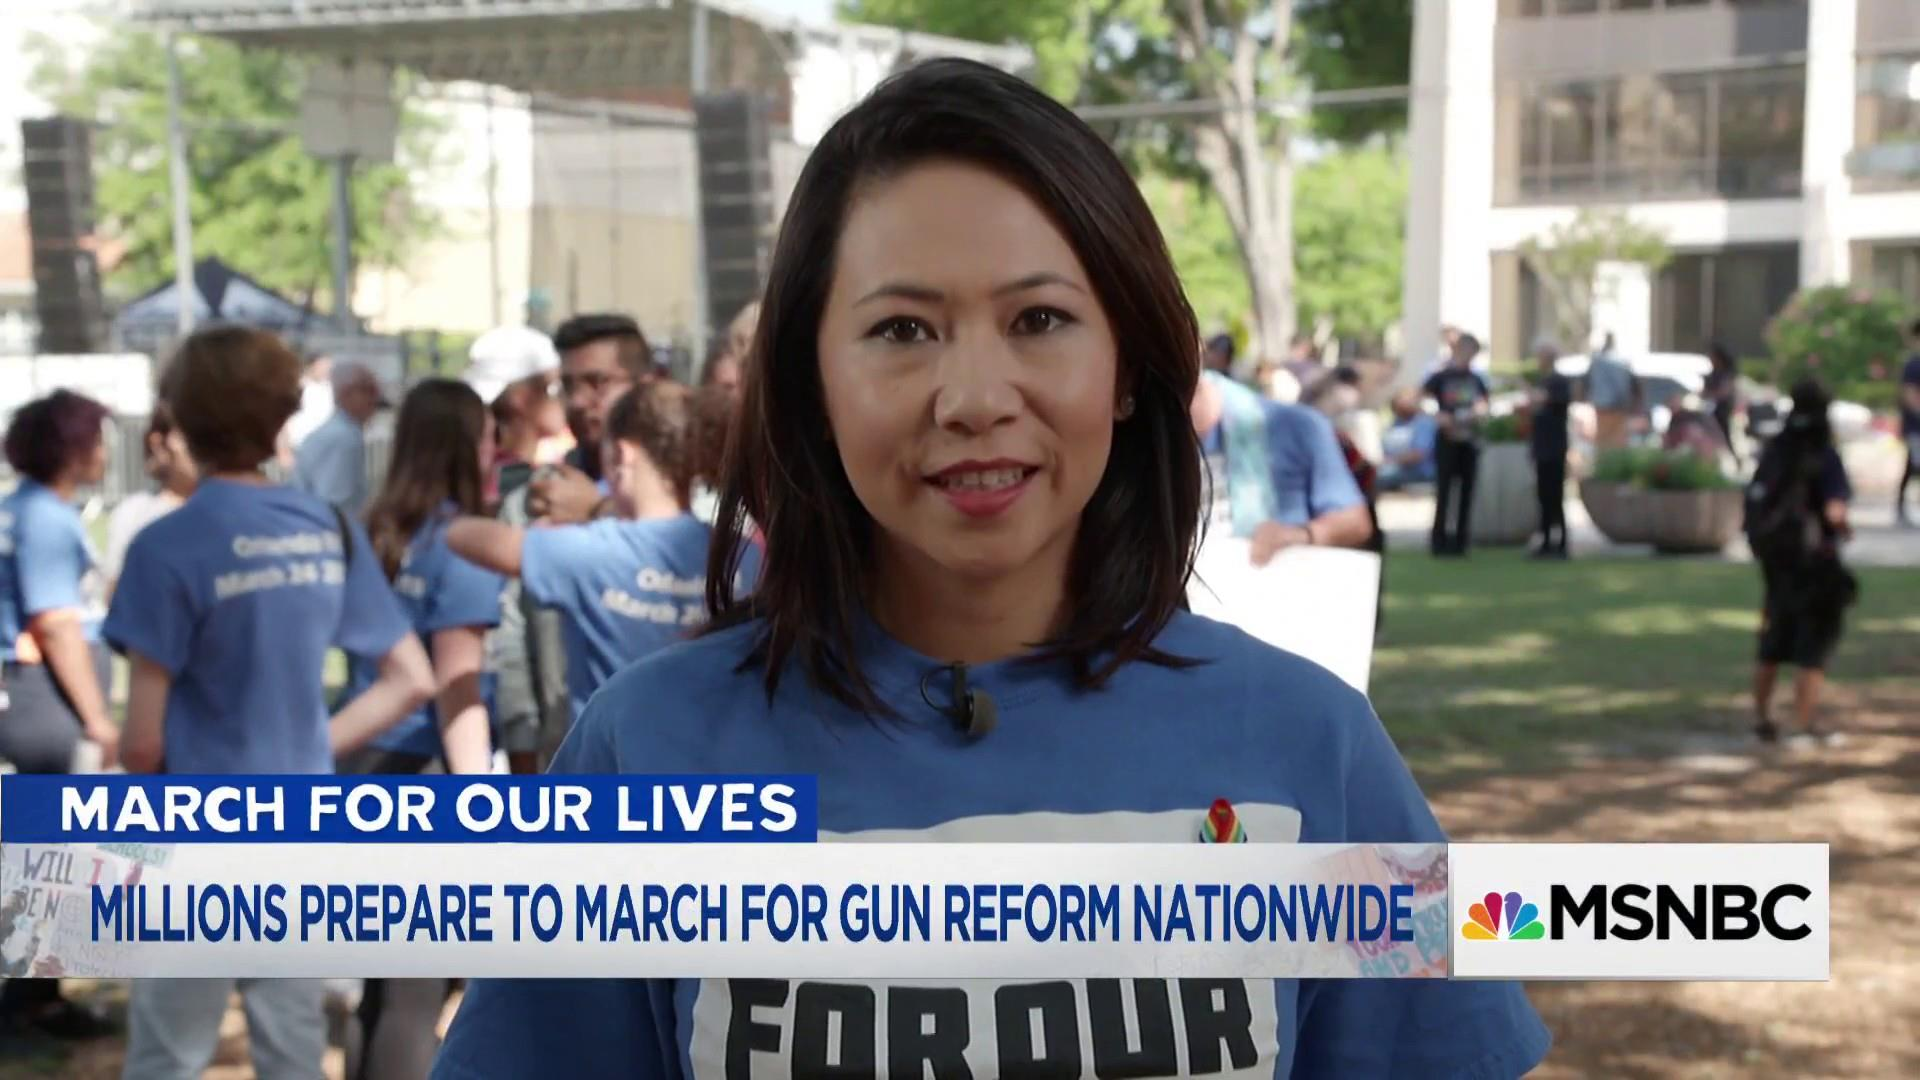 Rep. Murphy on the importance of 'citizens raising their voices' on guns